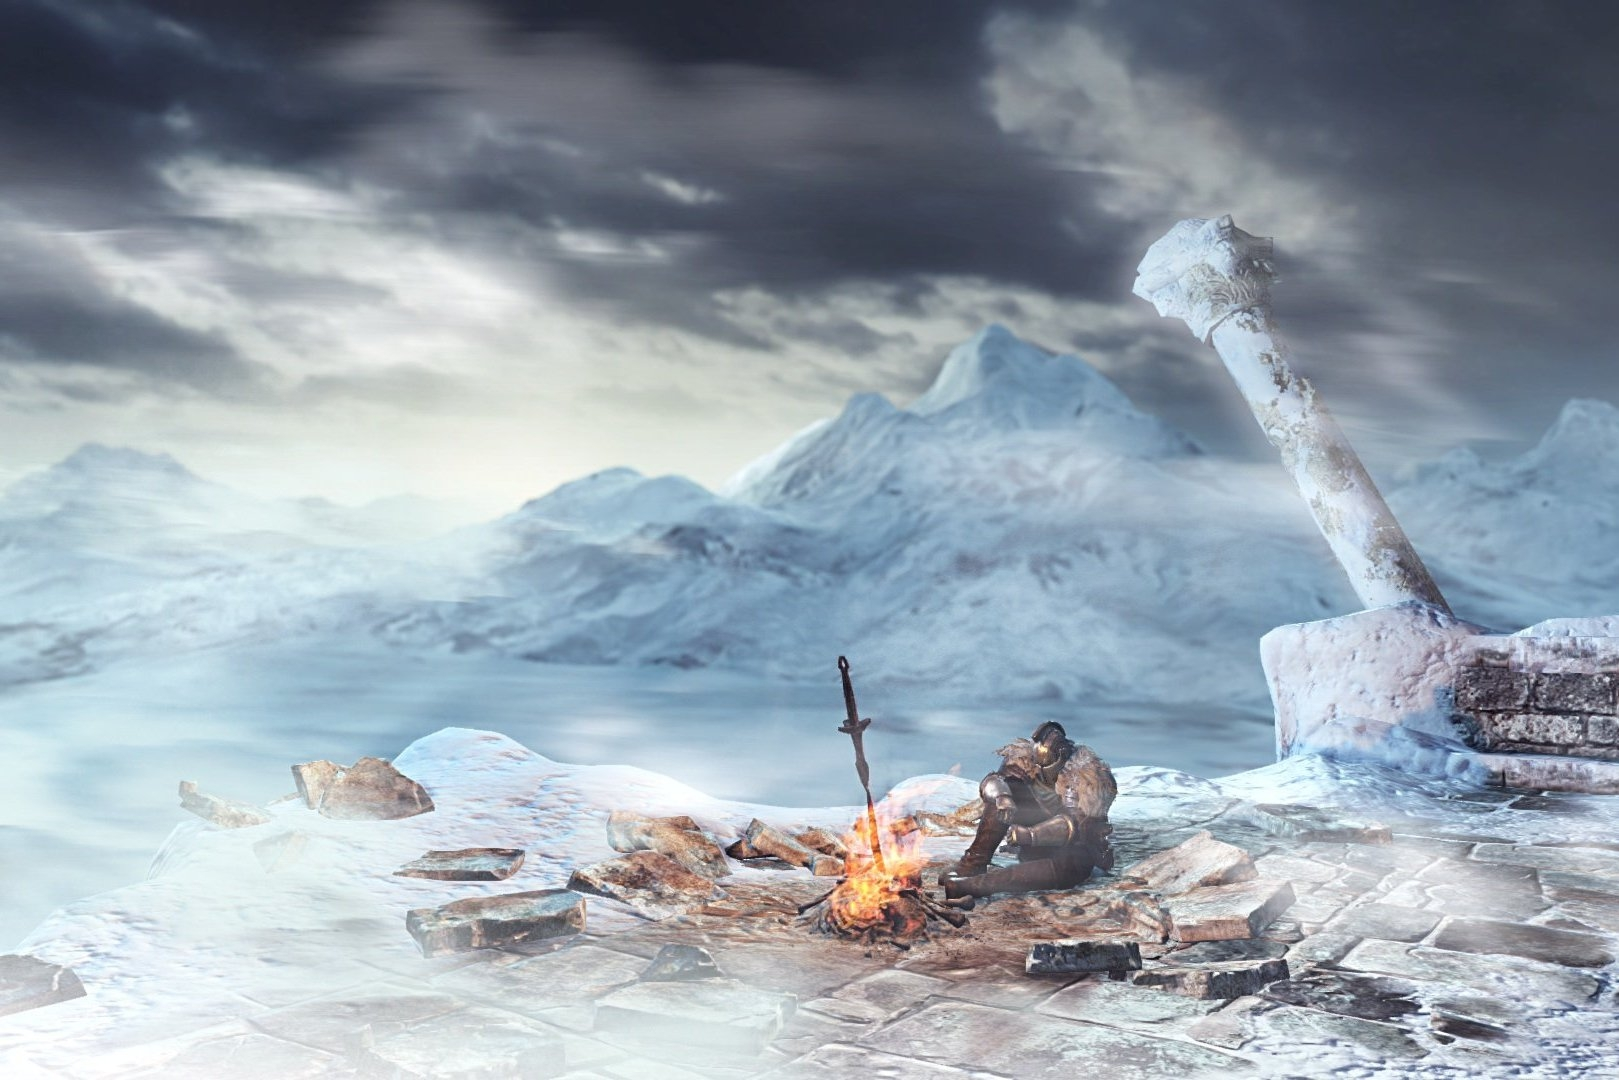 Dark Souls Ii Final Review The Trouble With Sequels: Crown Of The Ivory King Walkthrough And